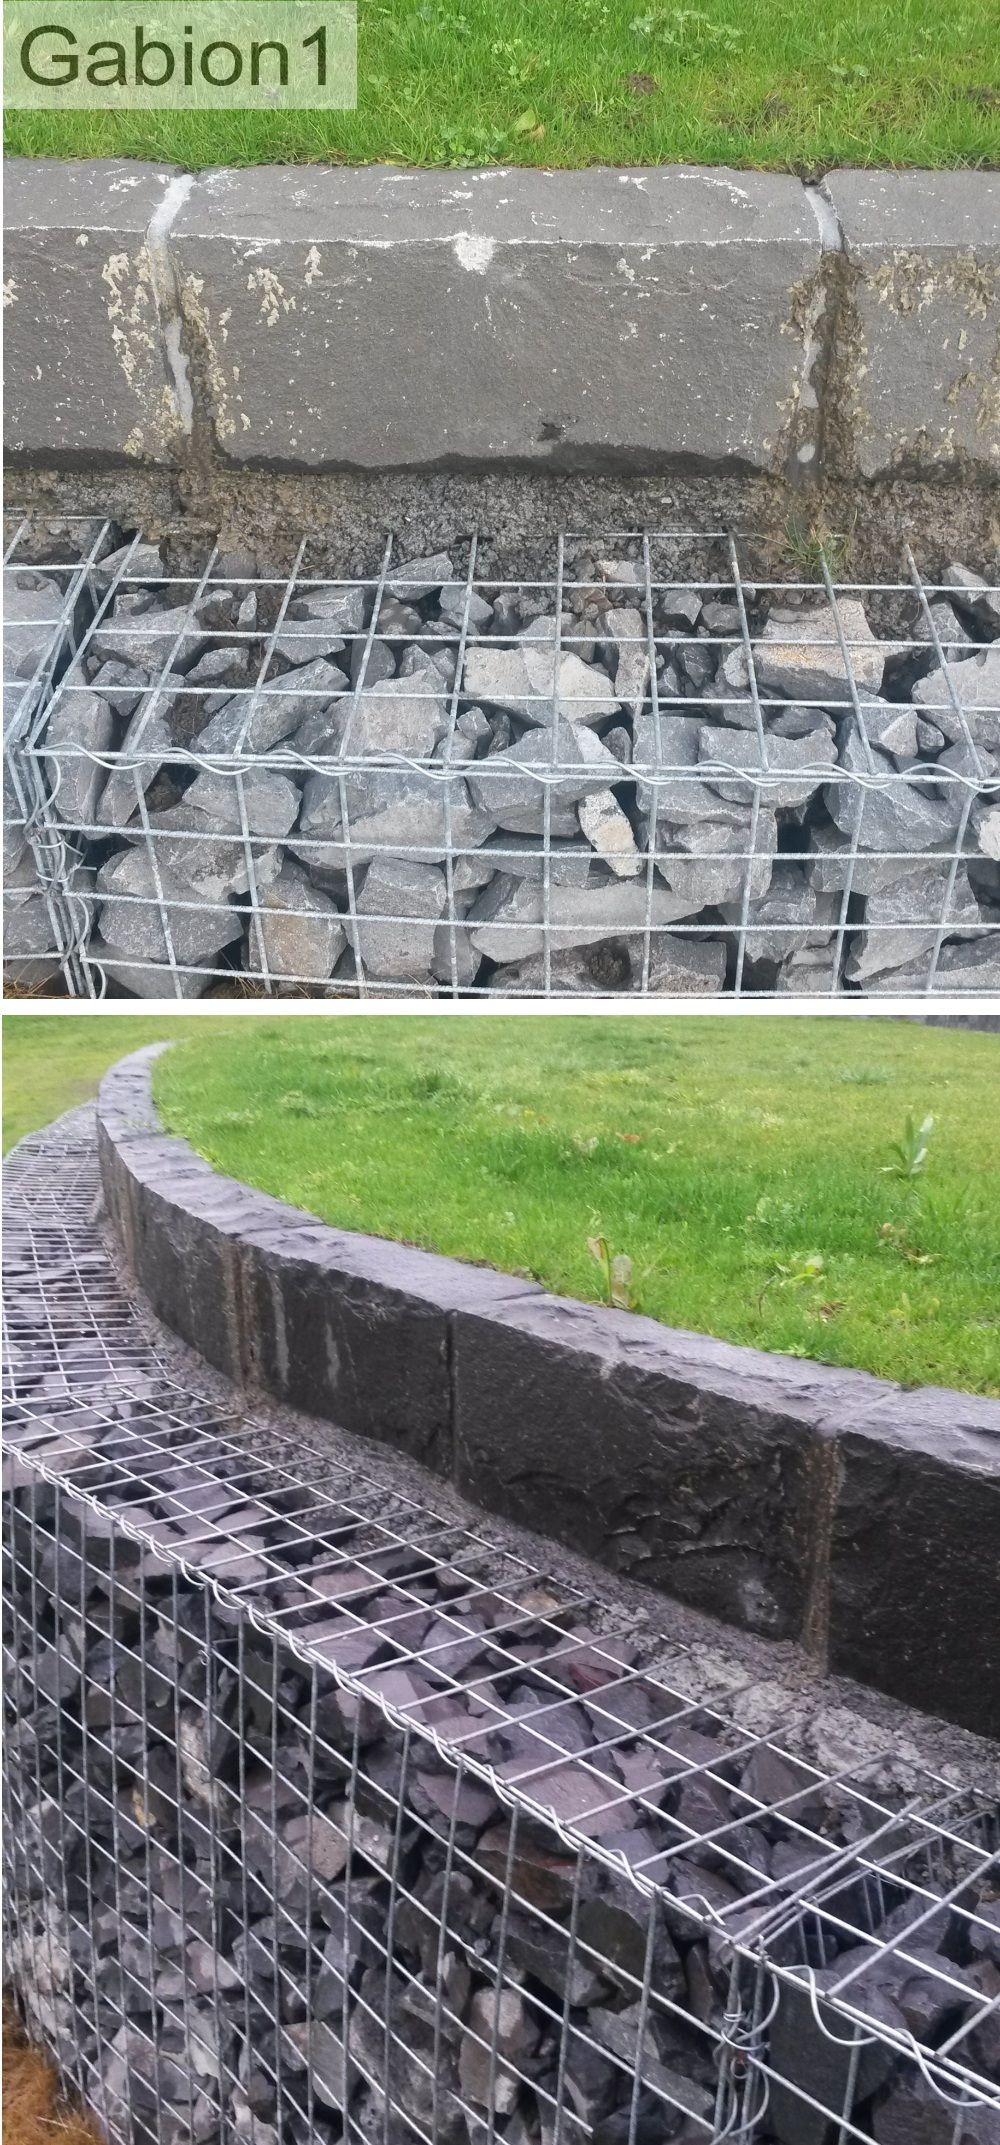 Gabion Wall With Stone Capping Detail Http Www Gabion1 Co Nz Garden Retaining Wall Gabion Wall Garden Wall